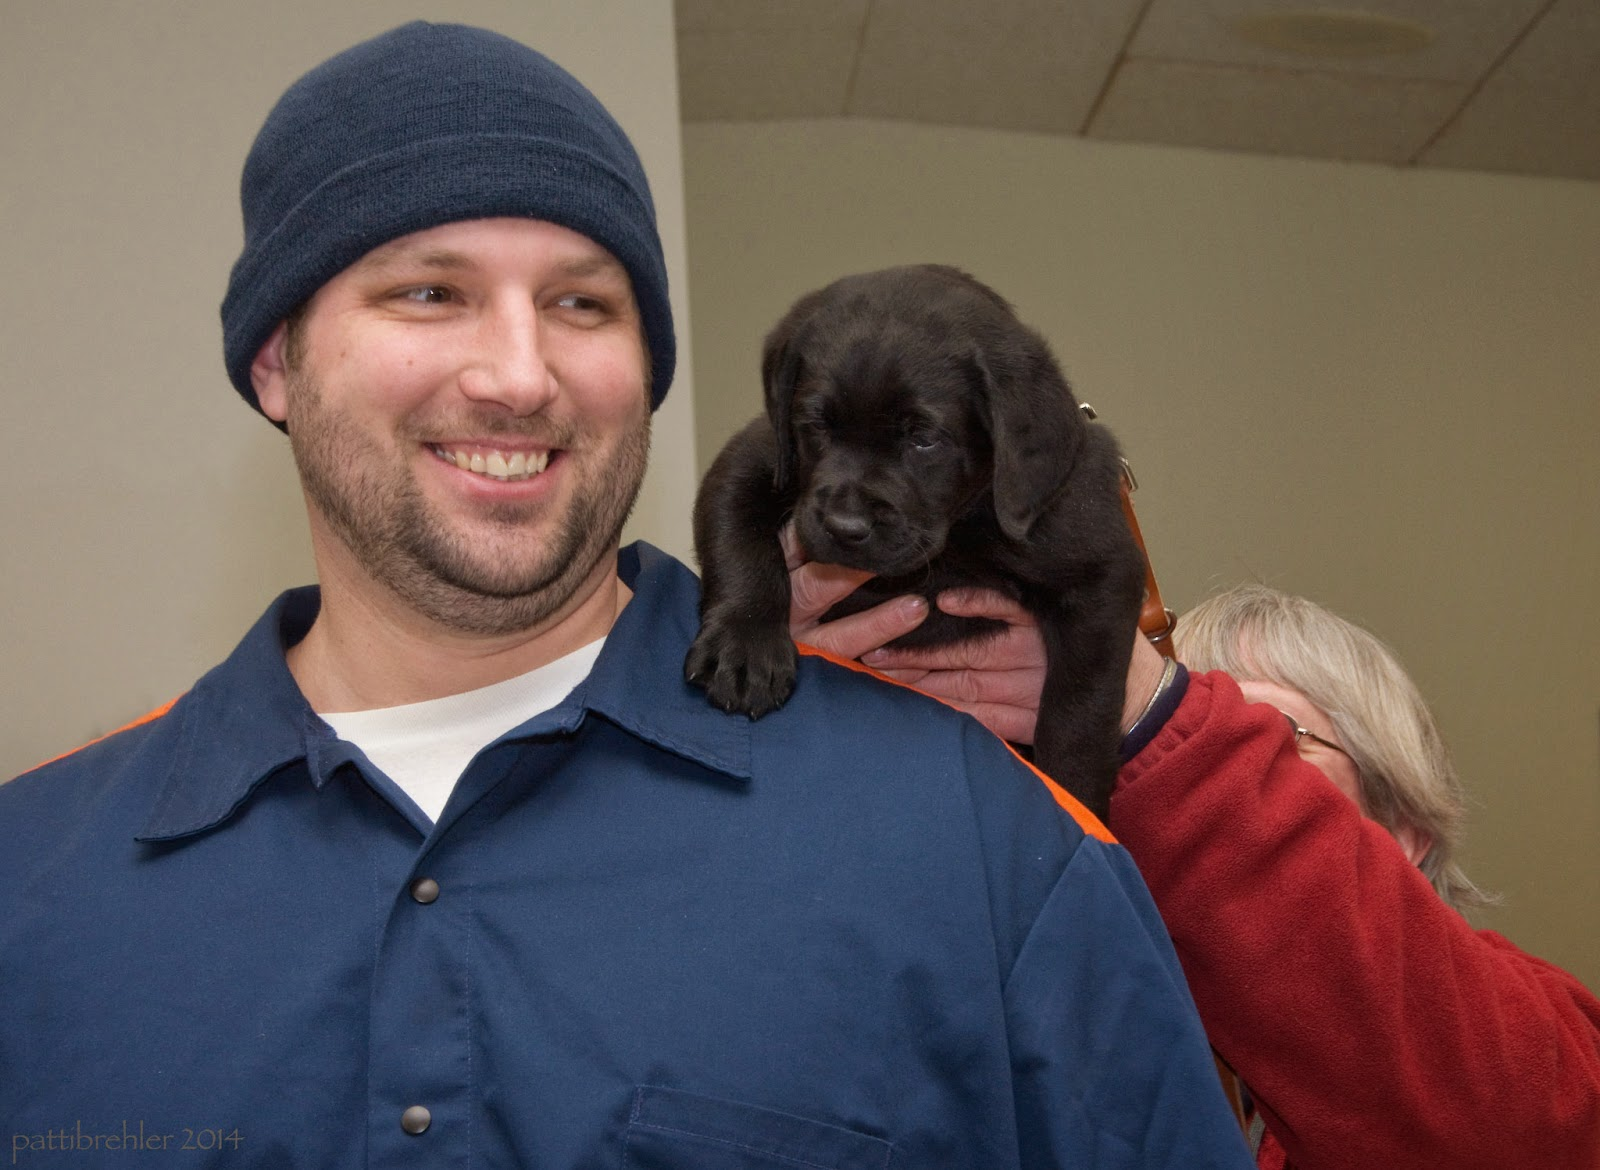 The tall man has his eyes open now and is still smiling. The woman behind him is lifting a small black lab puppy over his left shoulder. The puppy's right paw is on the man's shoulder.